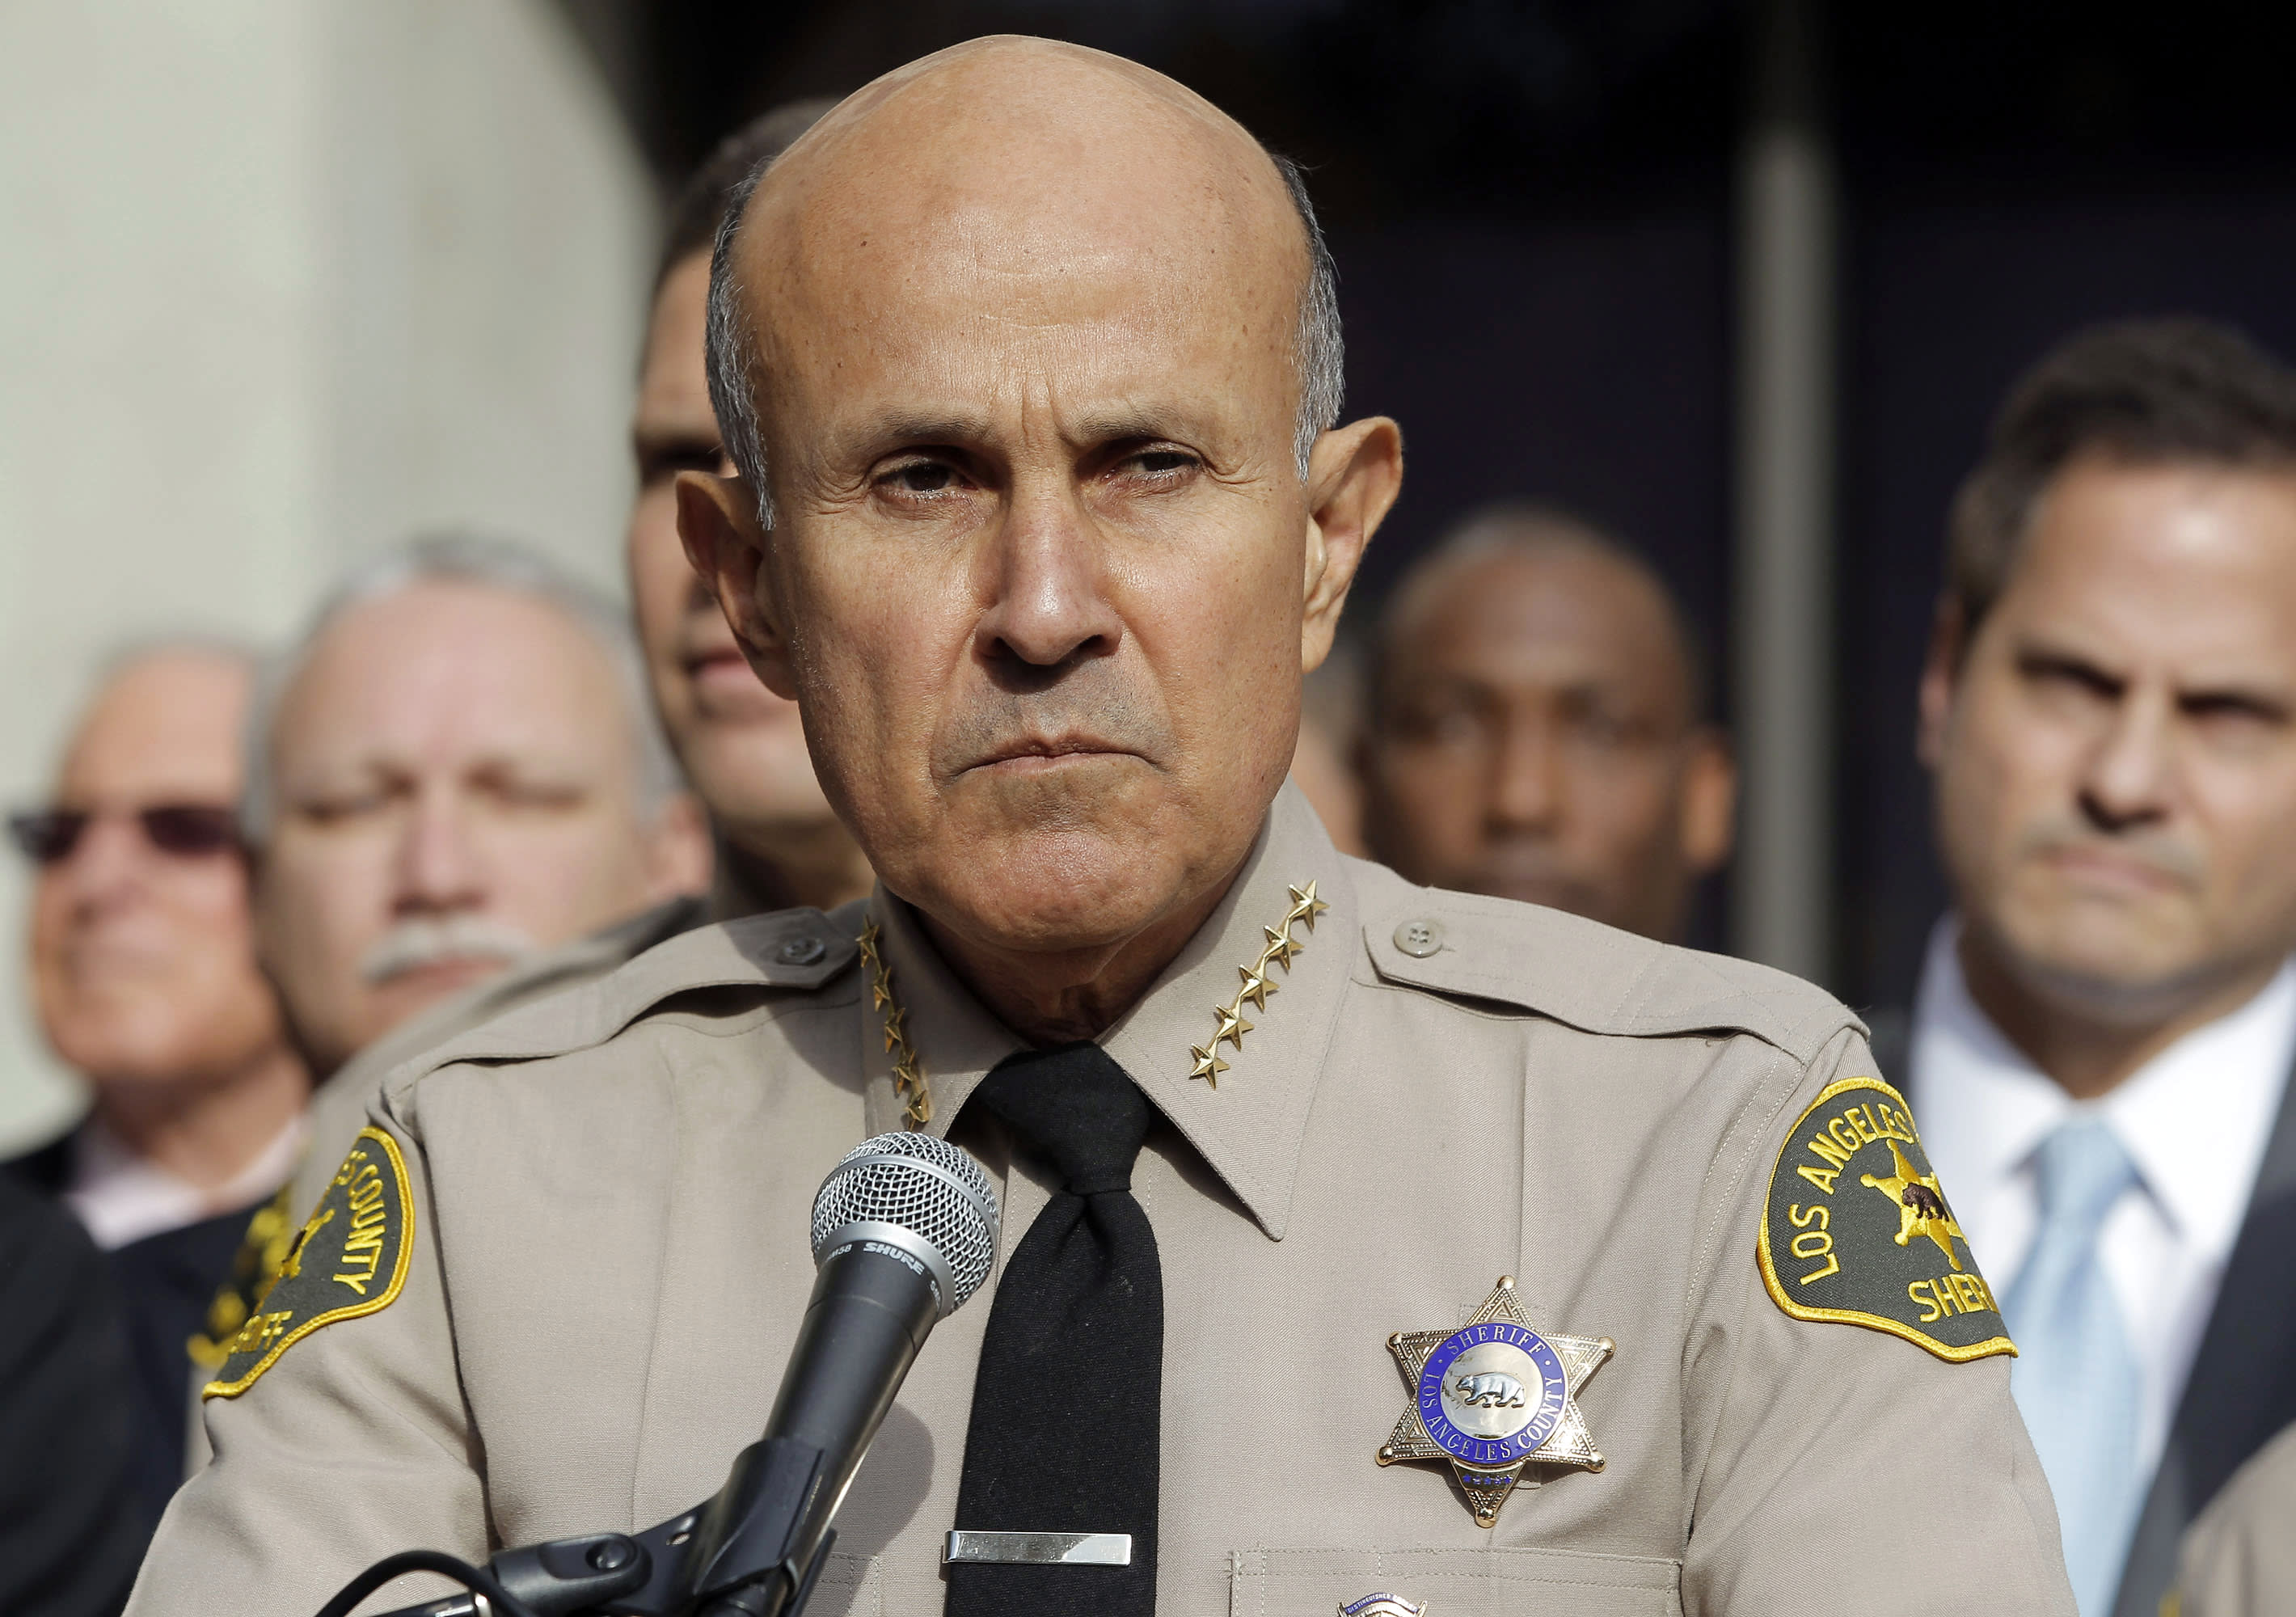 Recordings reveal the lies former LA sheriff told prosecutor